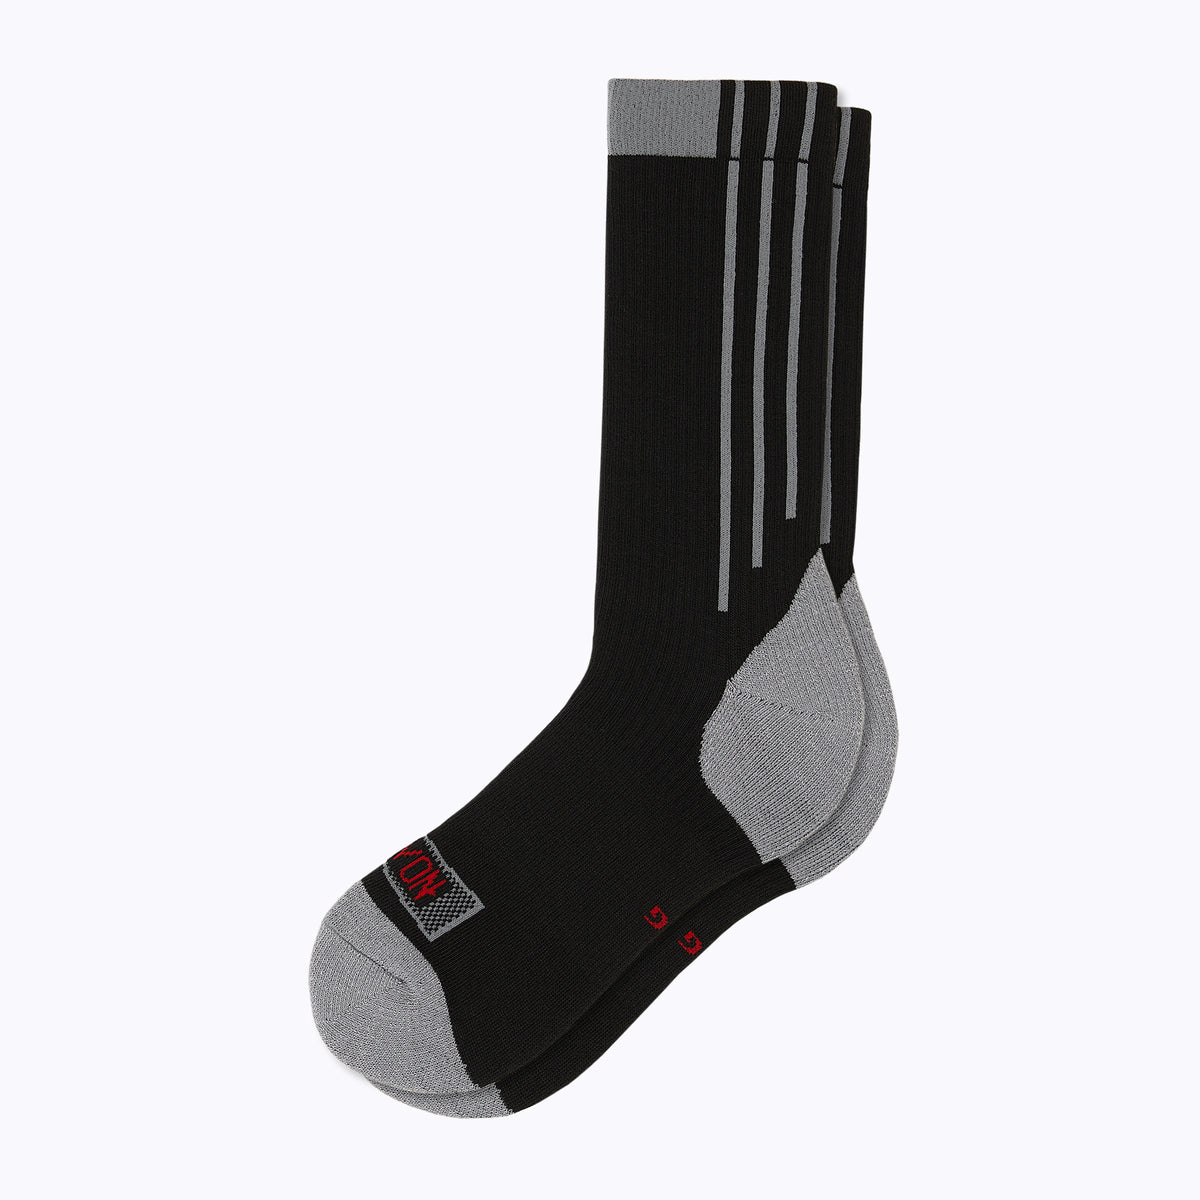 Americana Men's Crew Socks - Black + Wolf Grey by Canyon Socks